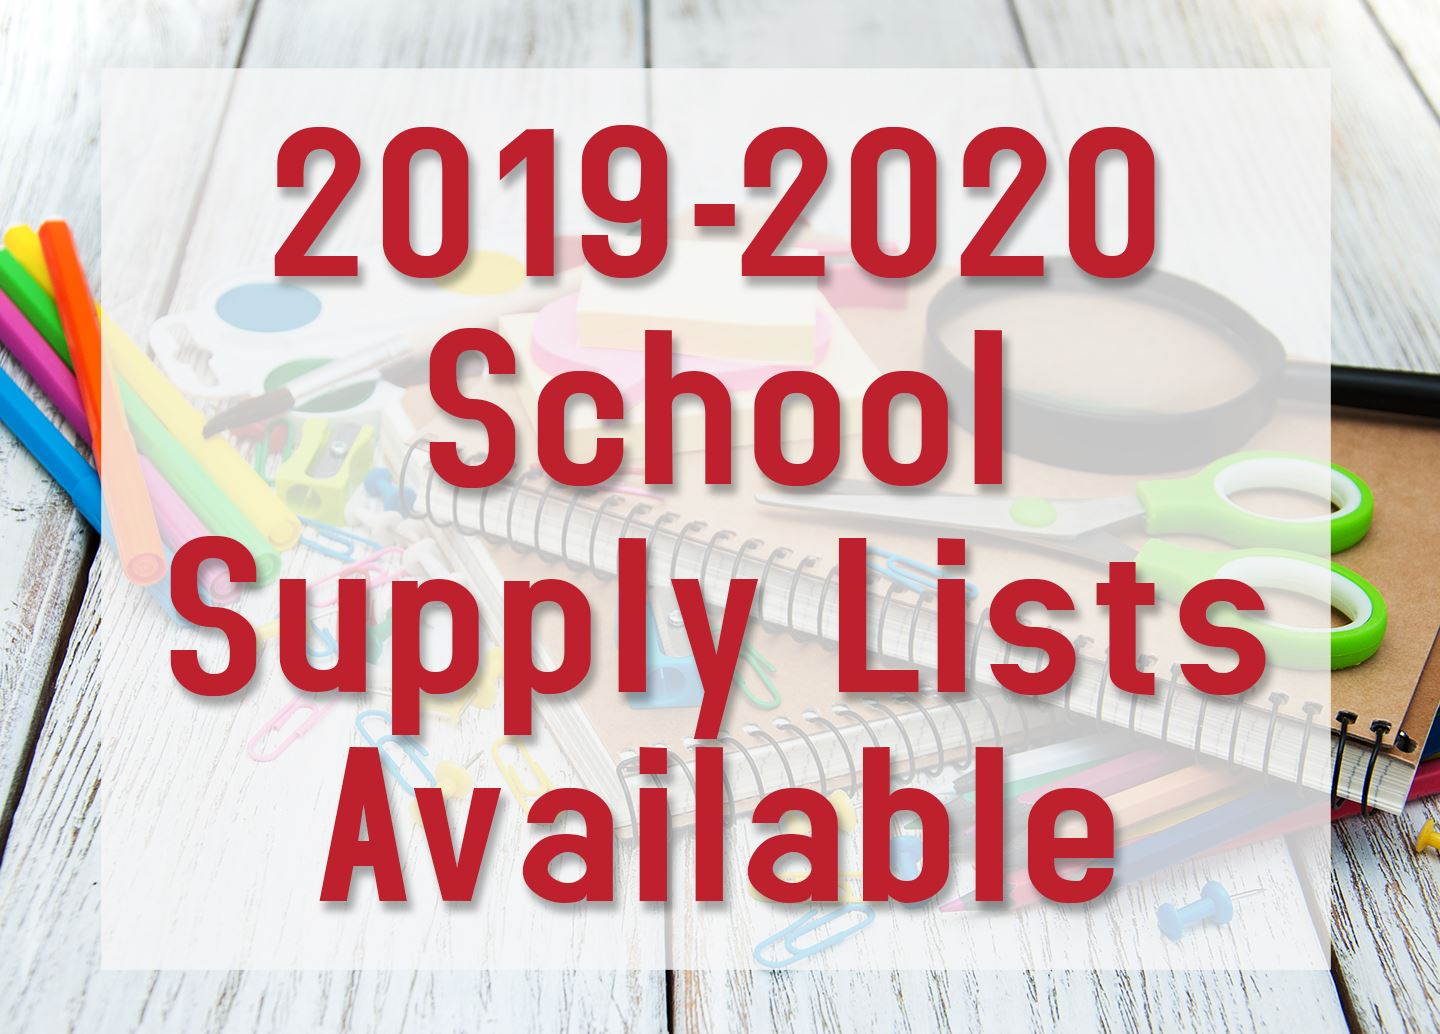 2019-2020 School Supply Lists are available now!